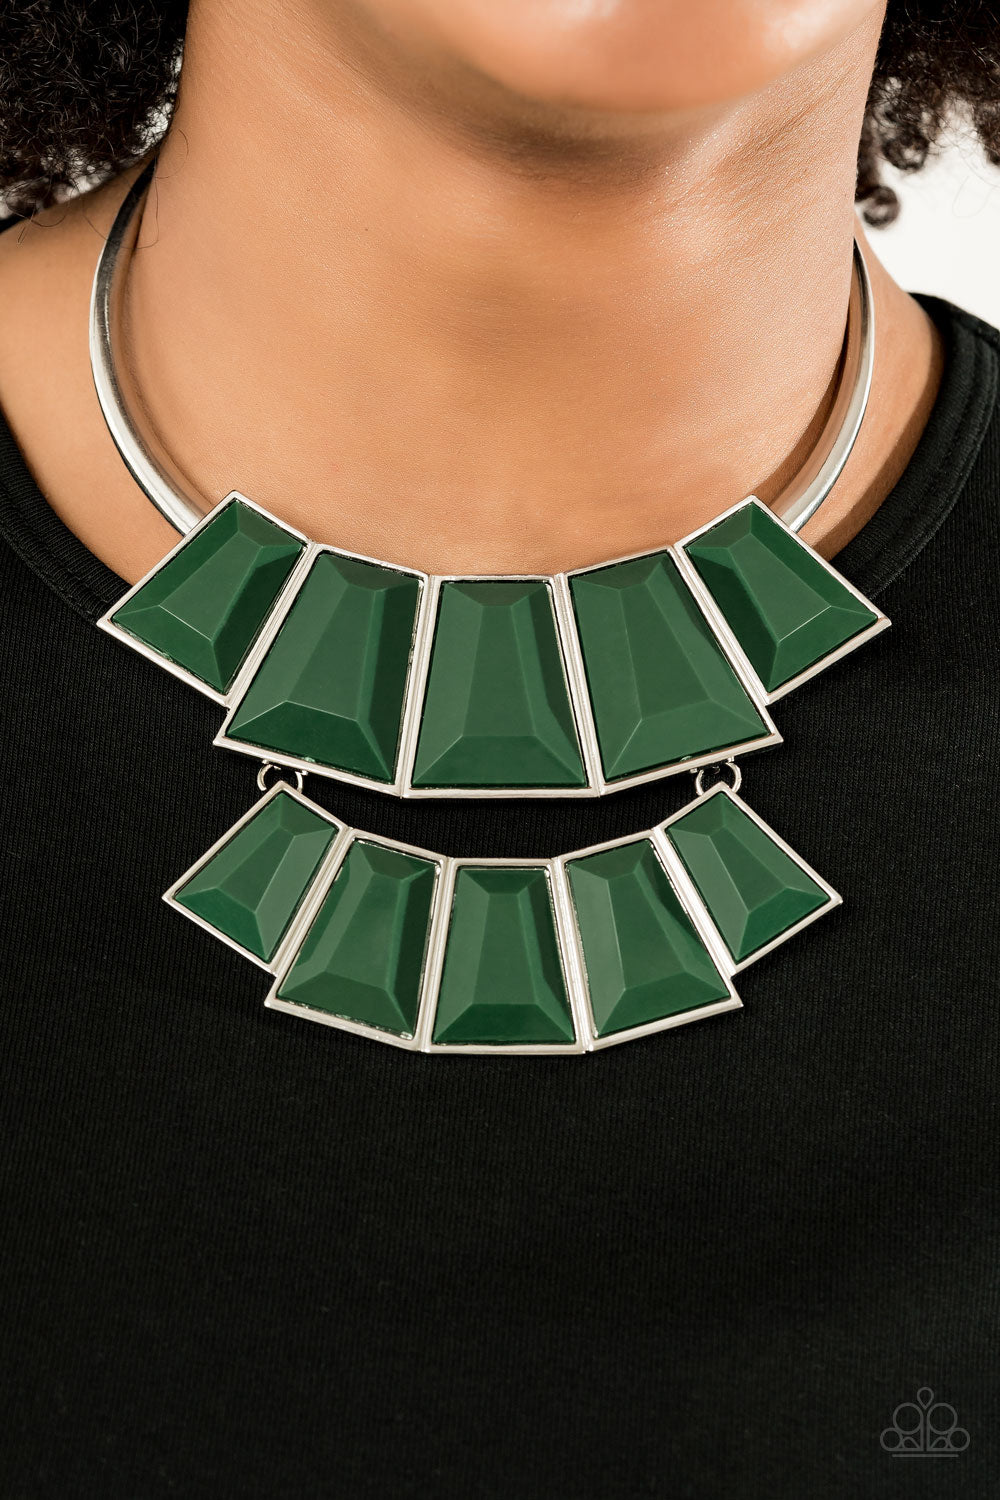 Paparazzi - Lions, TIGRESS, and Bears - Green Necklace Set - Classy Jewels by Linda